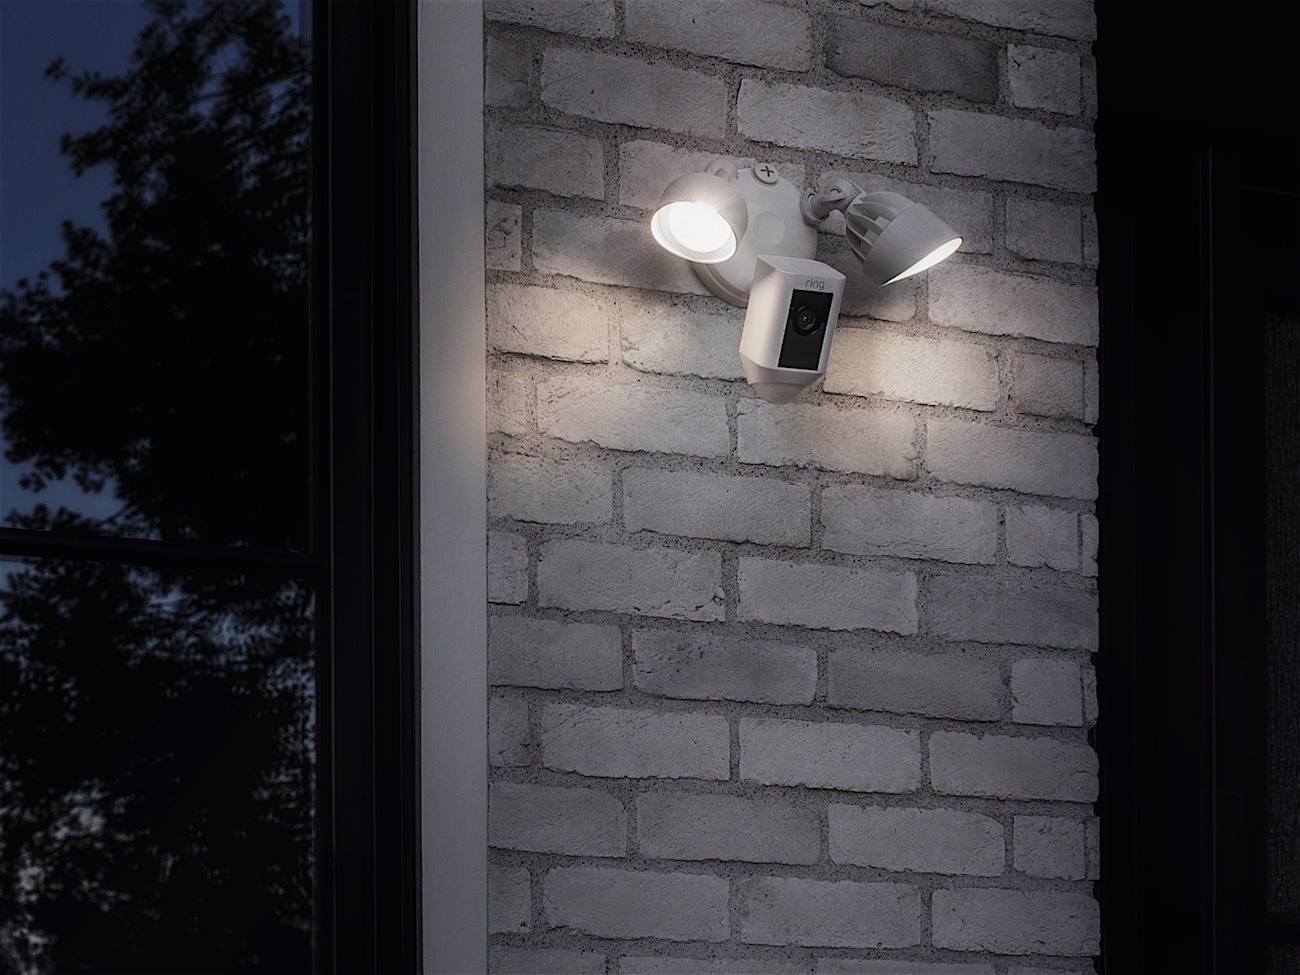 Ring Security Floodlight Camera